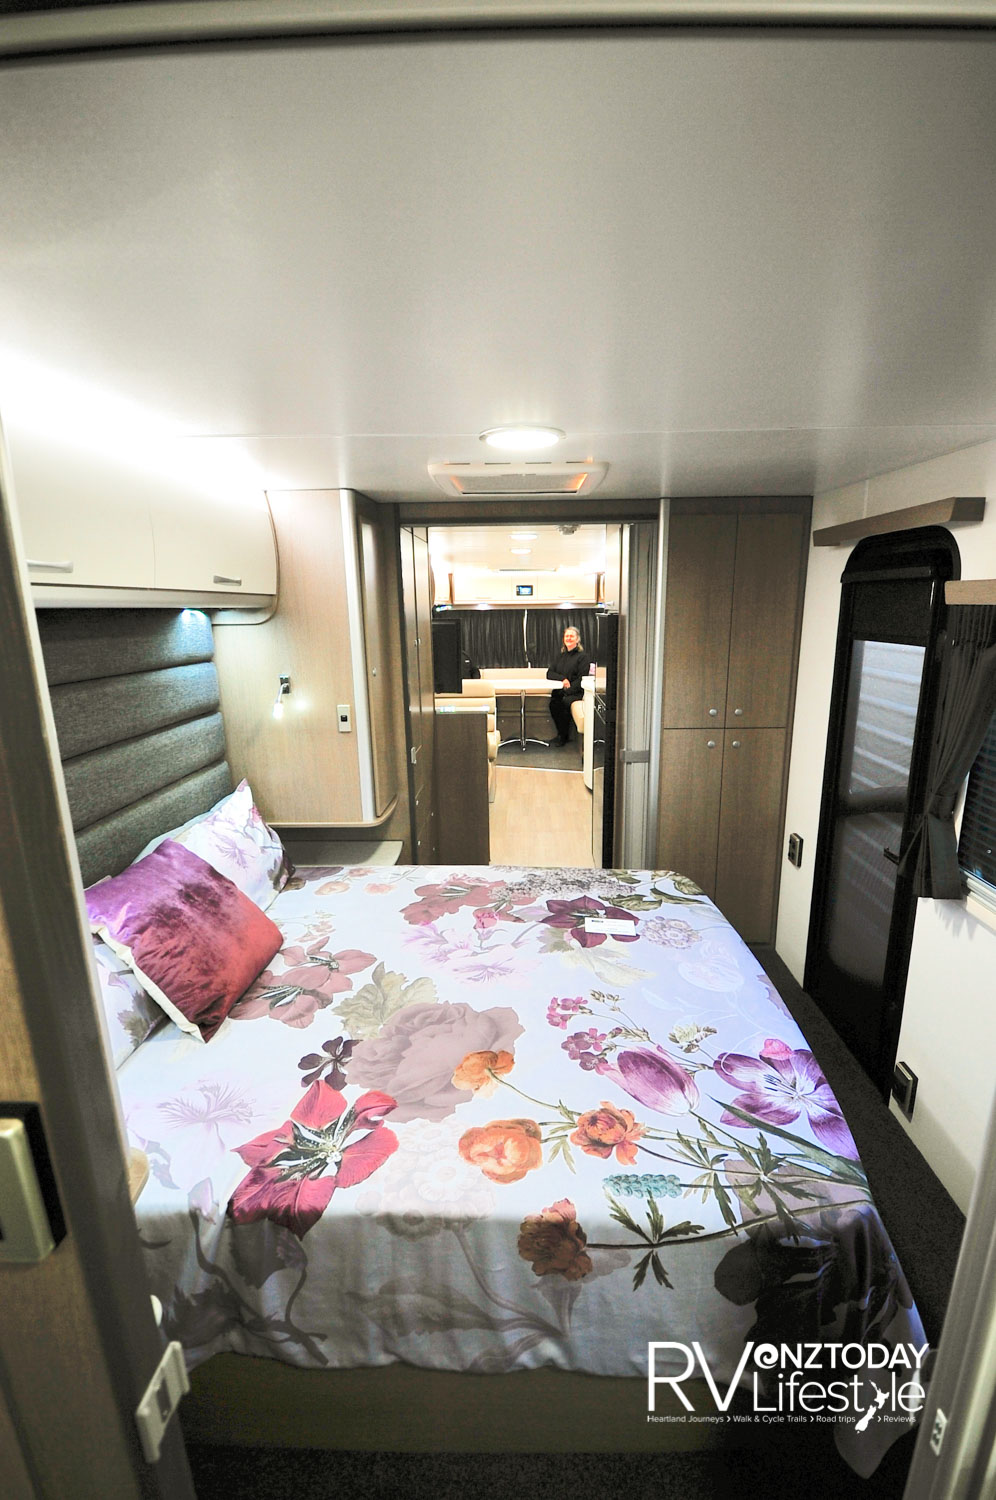 At nine metres long there is plenty of living space, what a great caravan